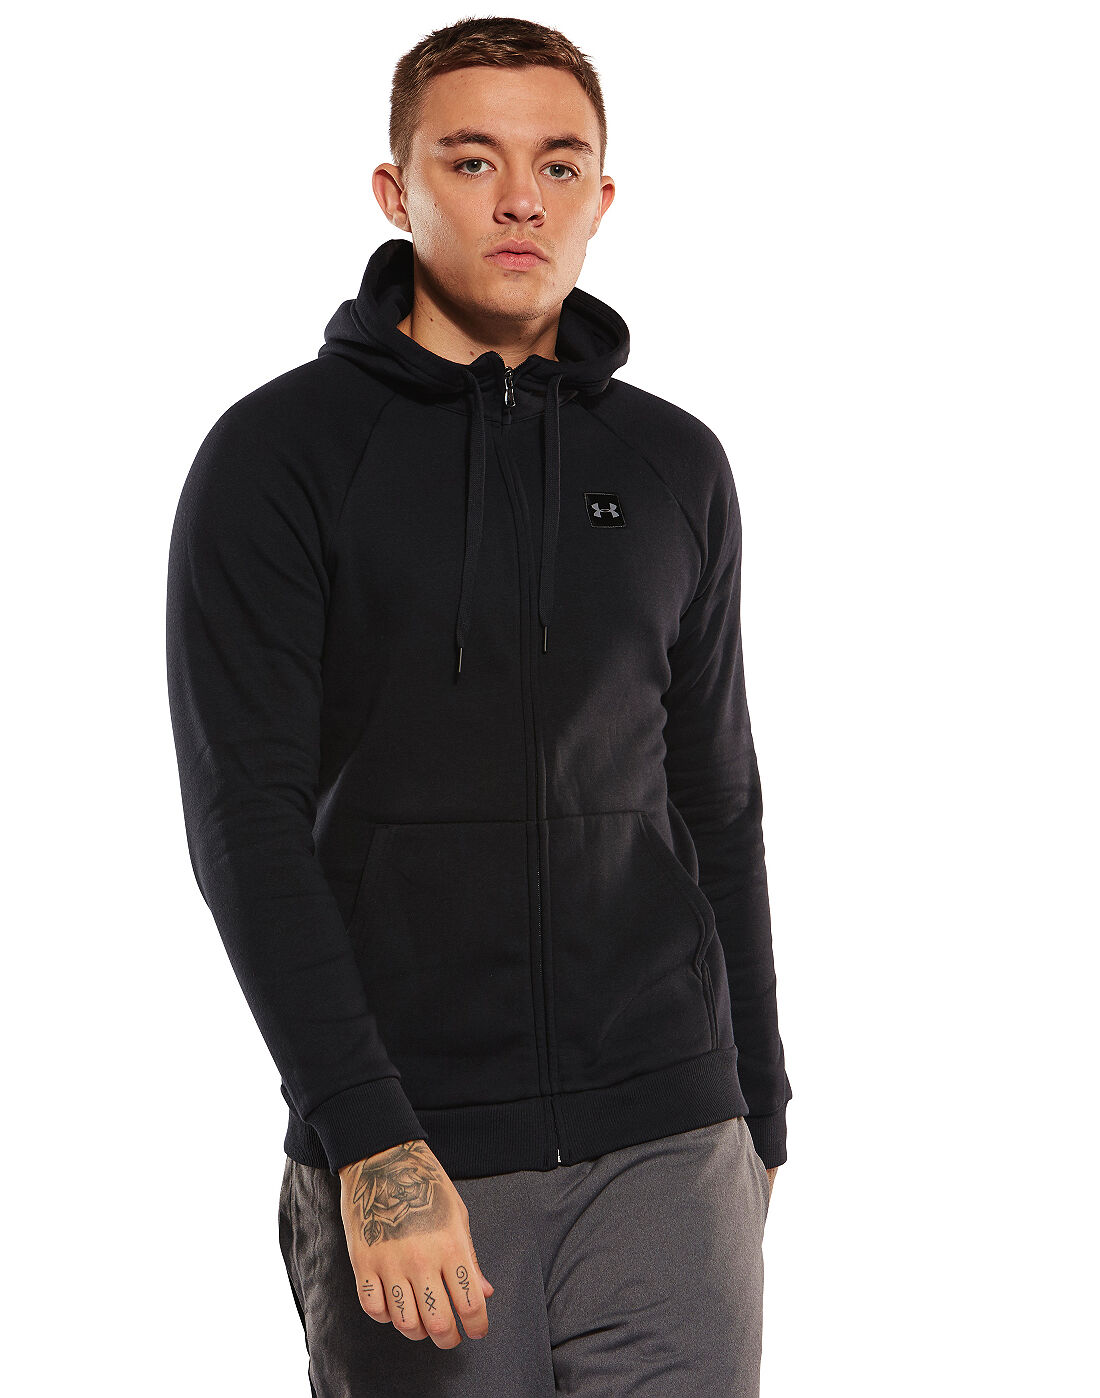 Under Armour Mens Rival Fleece Hoodie | Life Style Sports